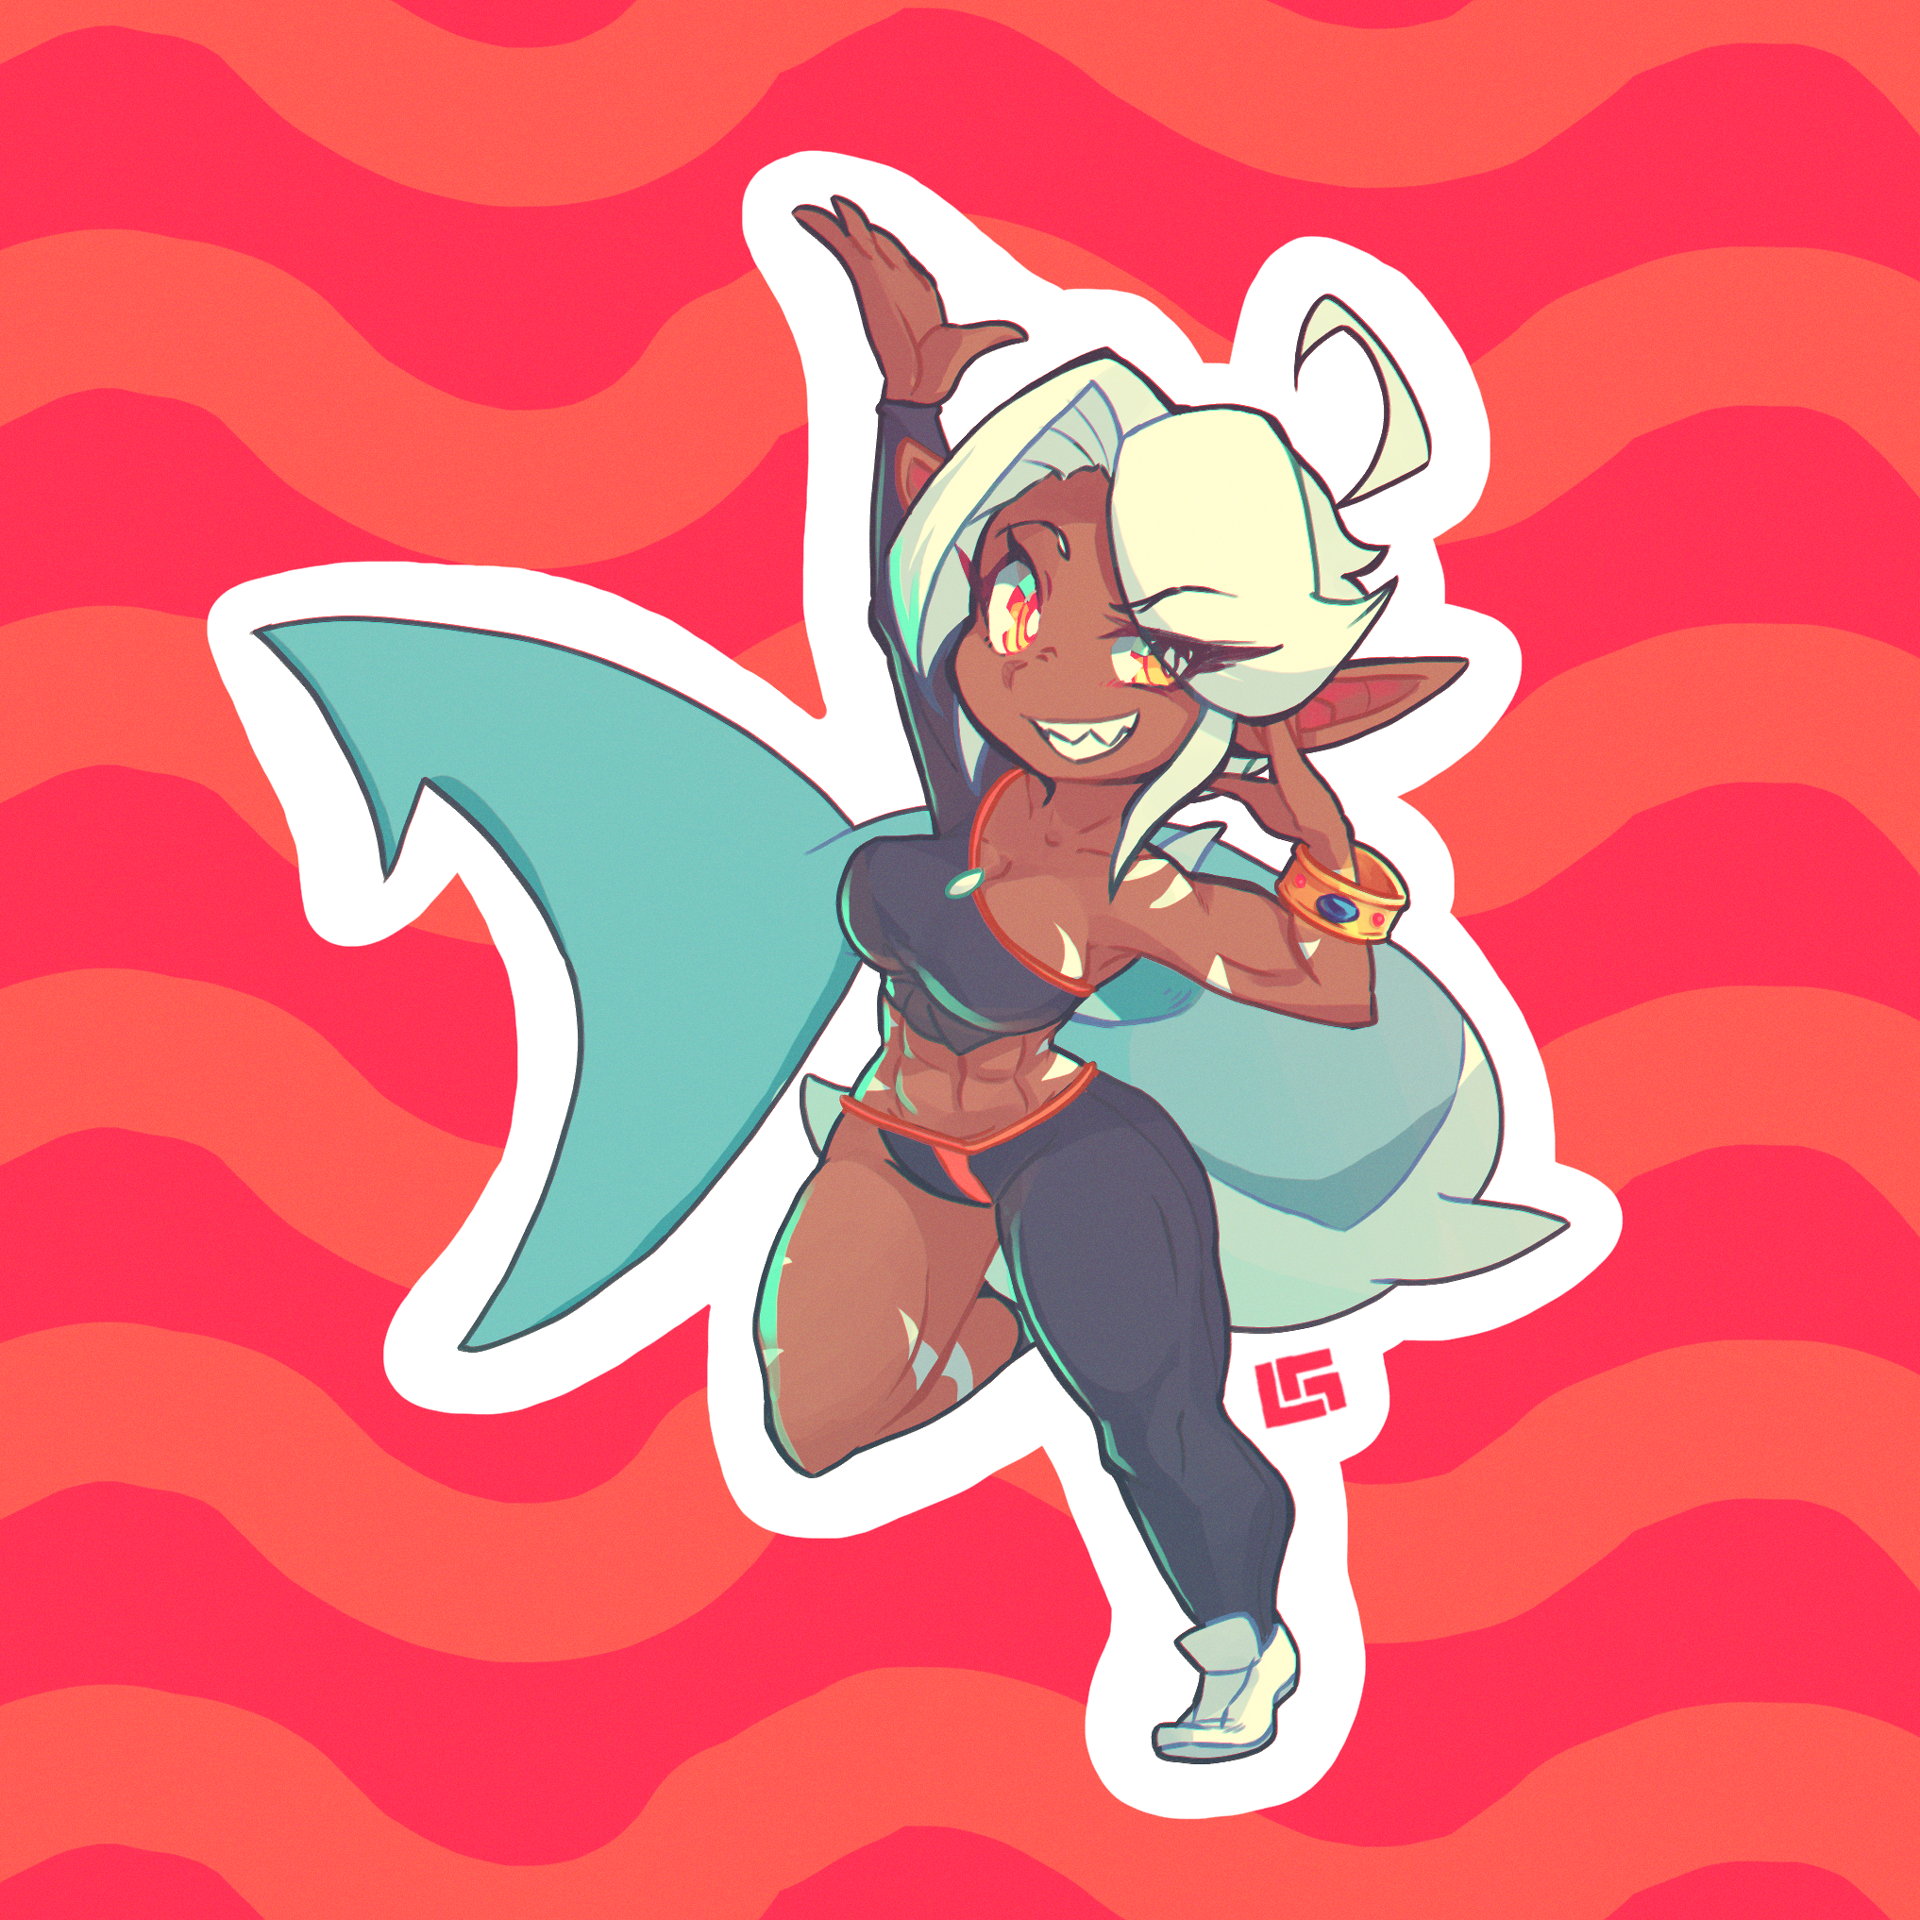 [COMMISSION] Shark Shark